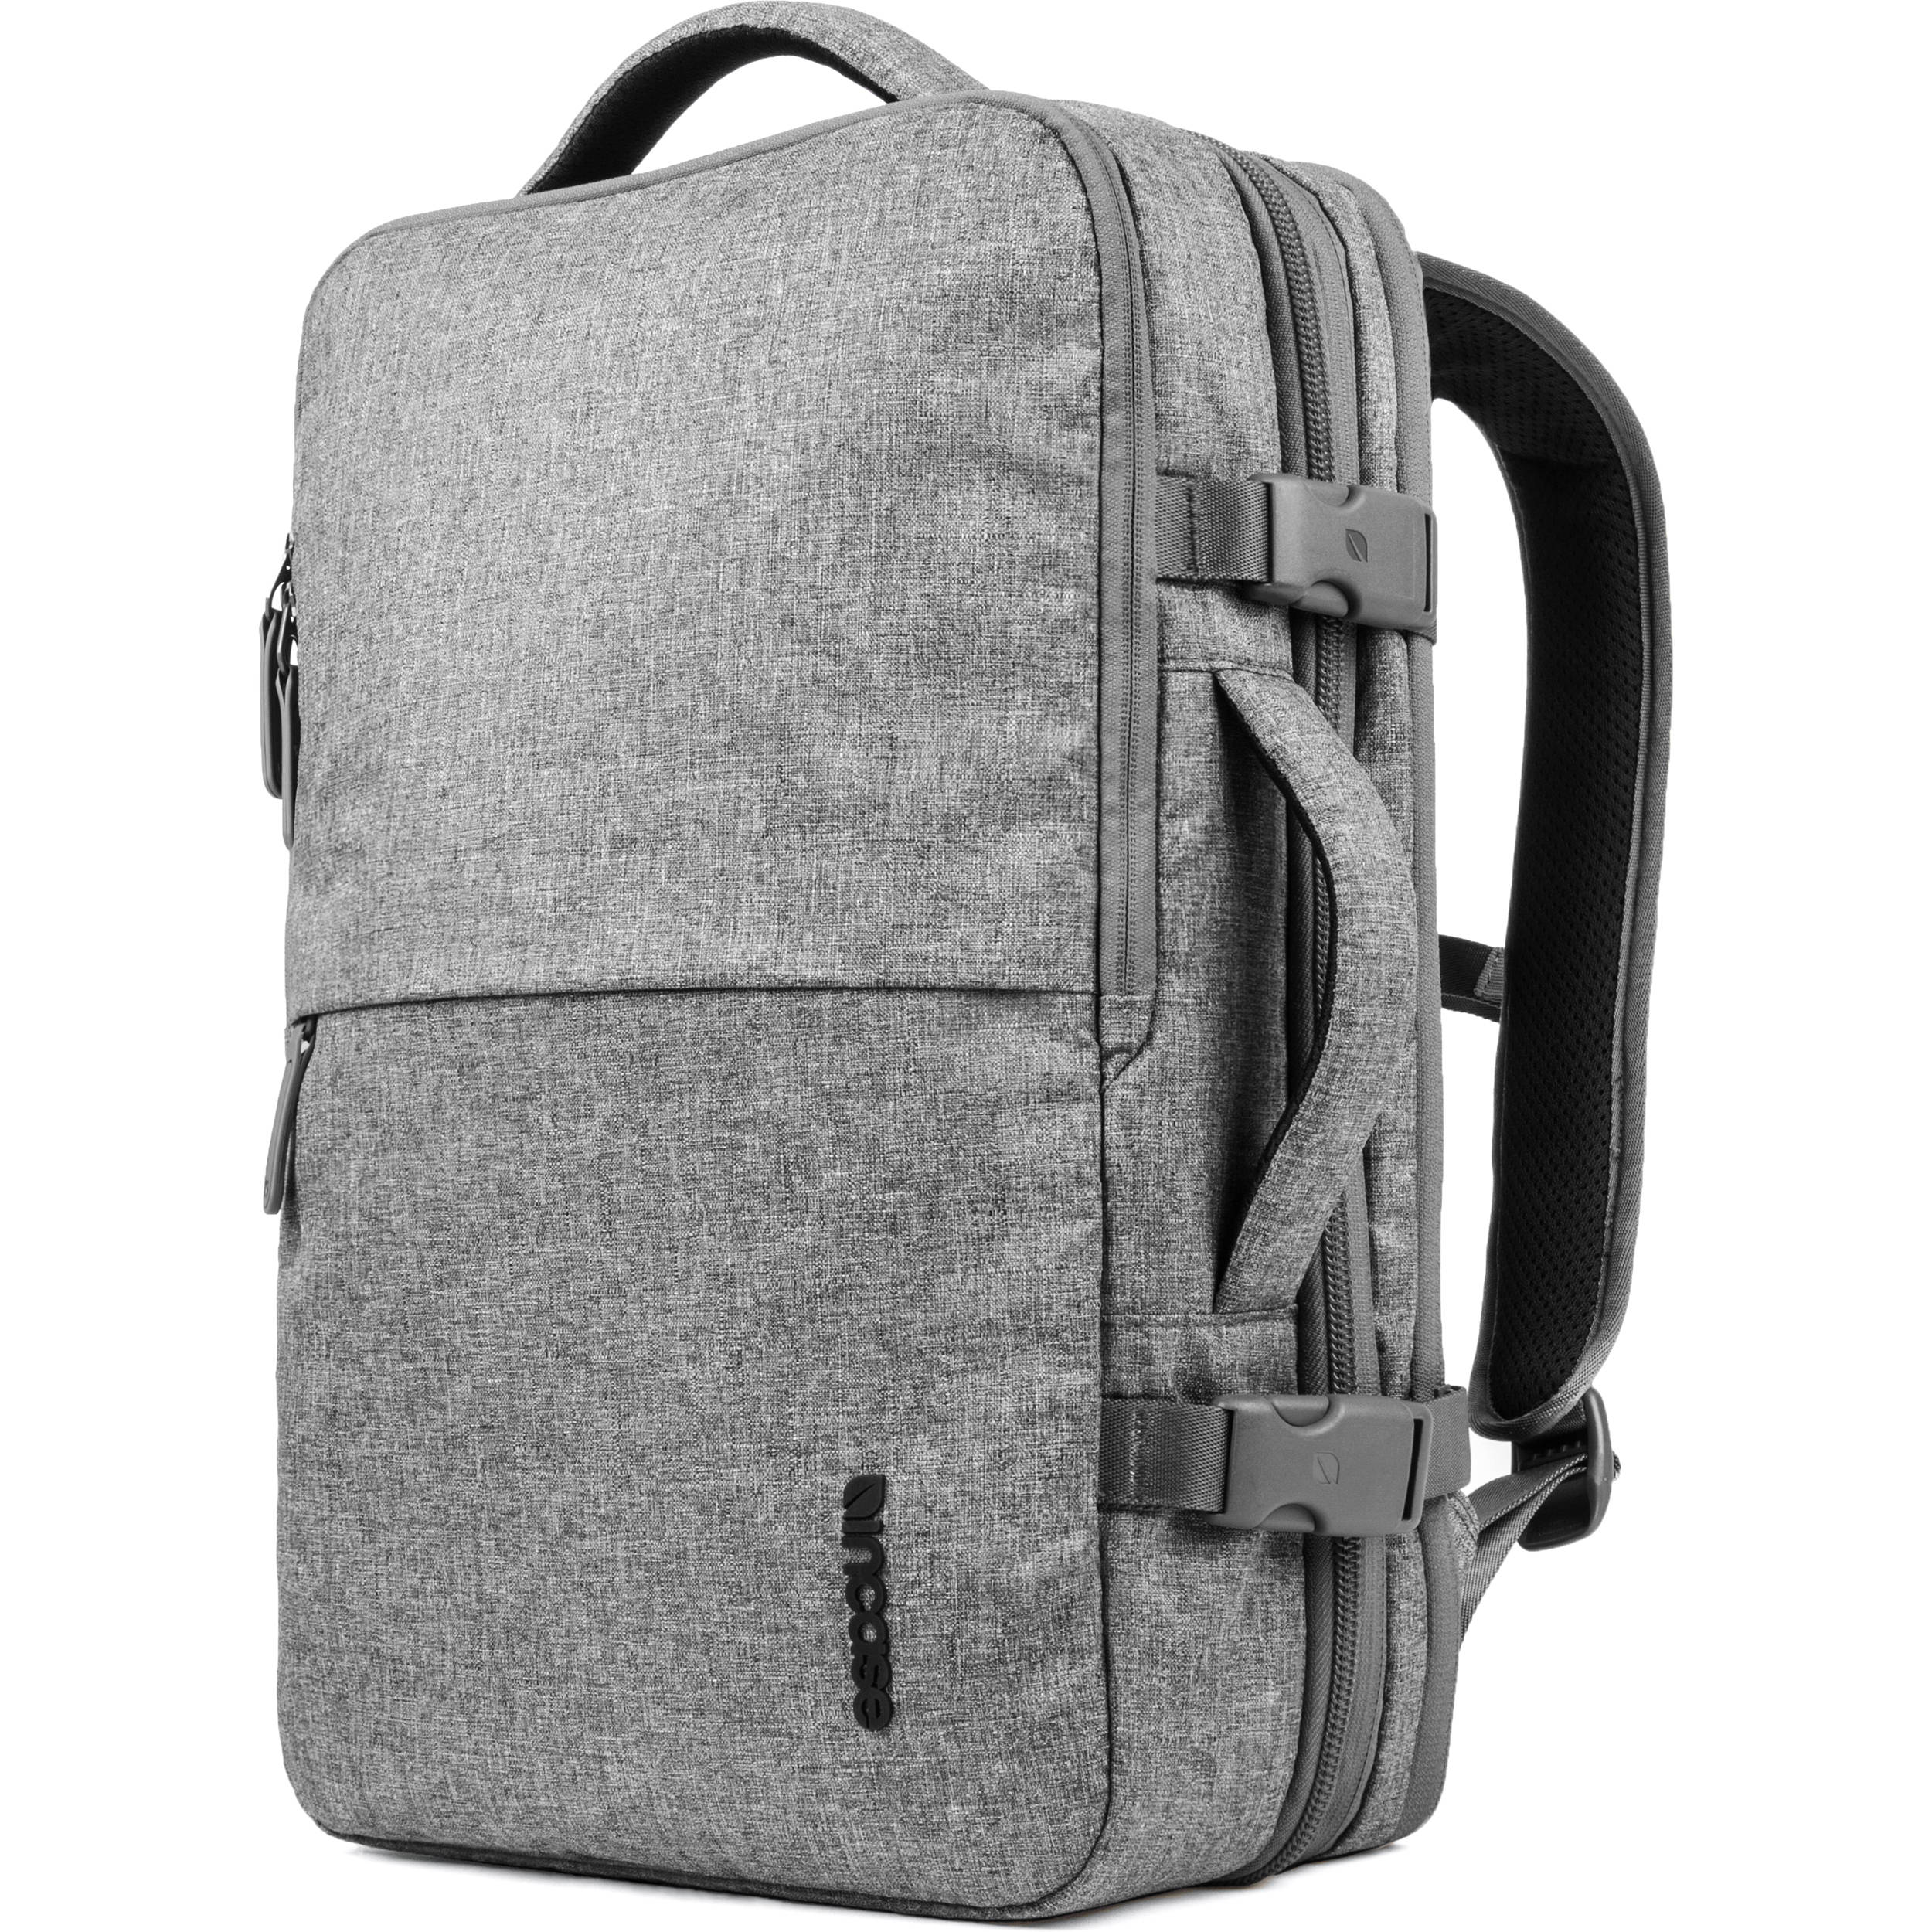 Incase Designs Corp EO Travel Backpack (Heather